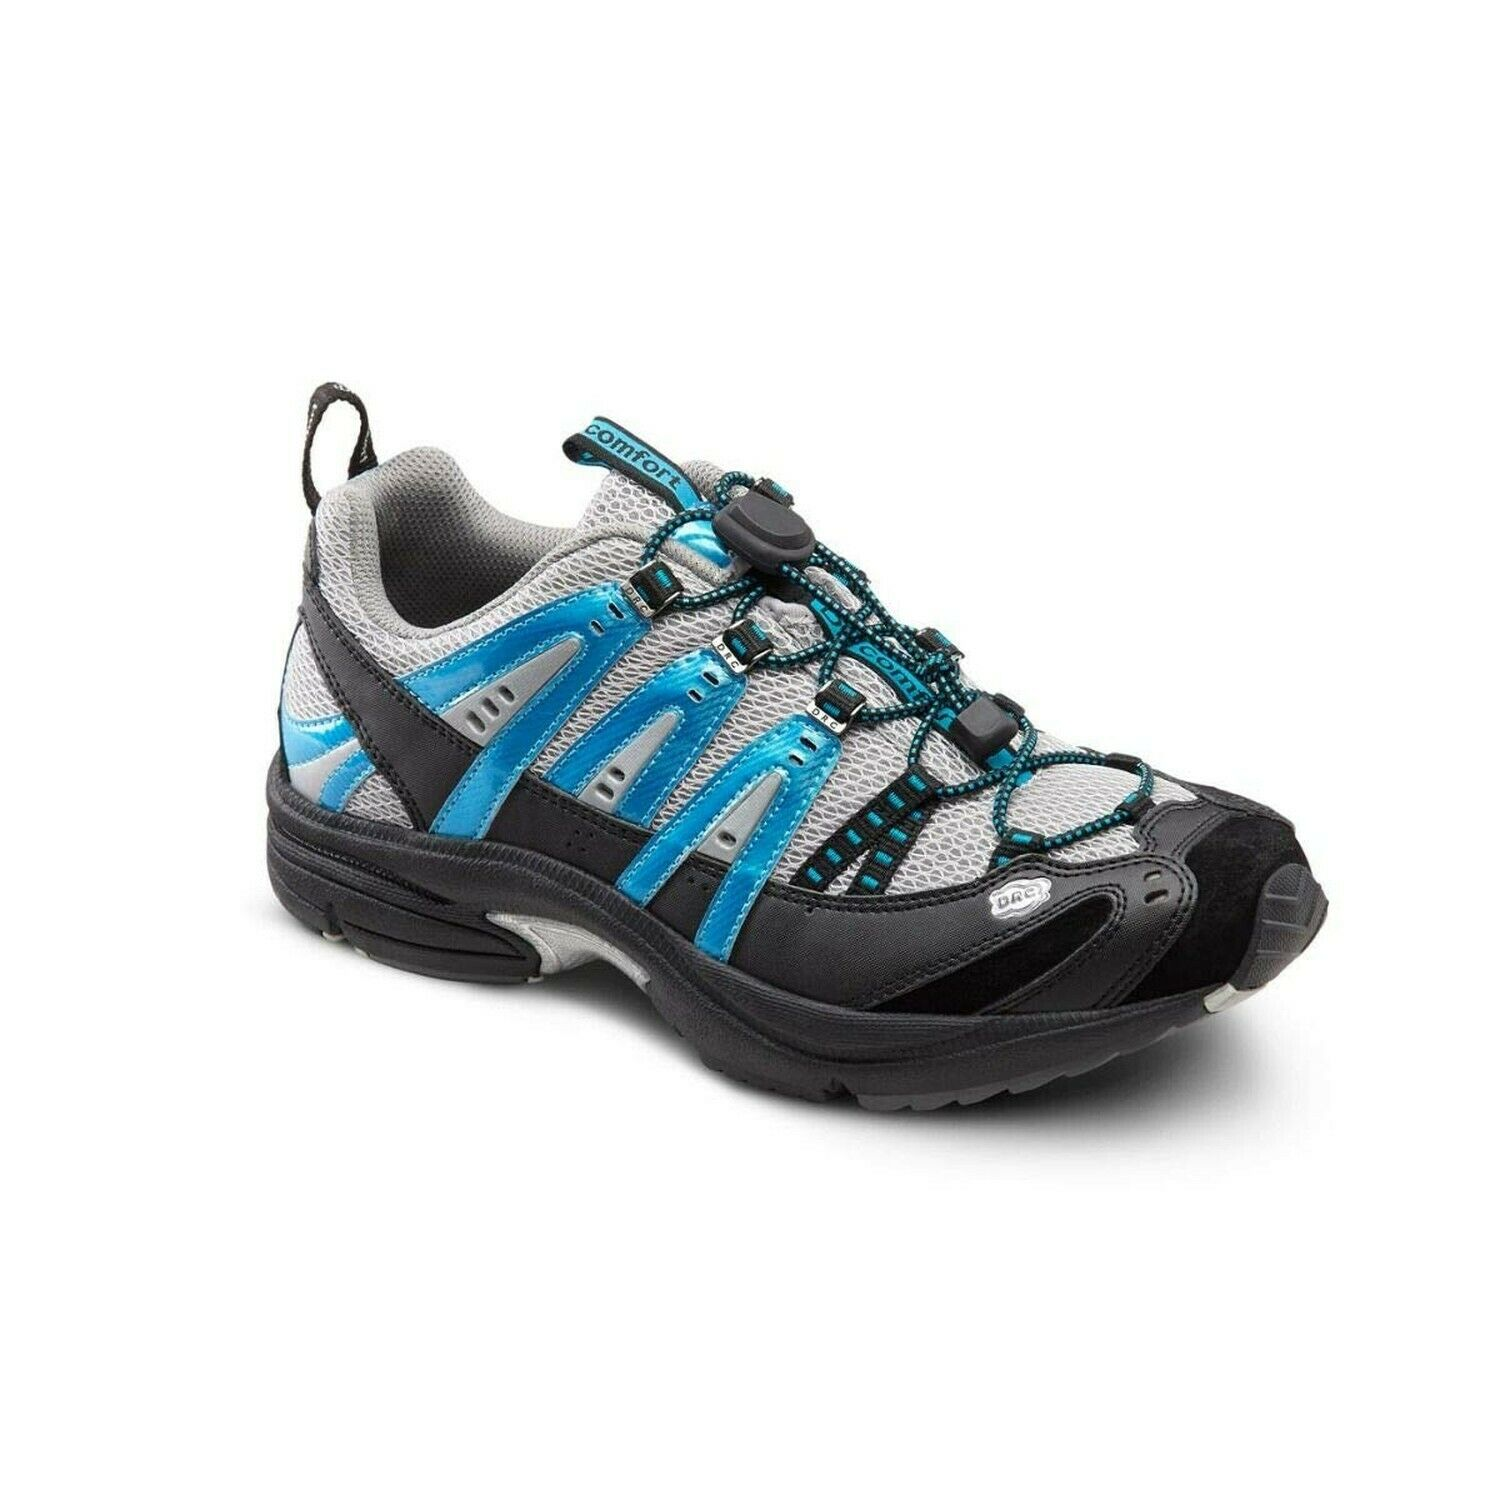 Dr. Comfort Performance Men's Therapeutic Athletic shoes  Metallic bluee 10.5 X...